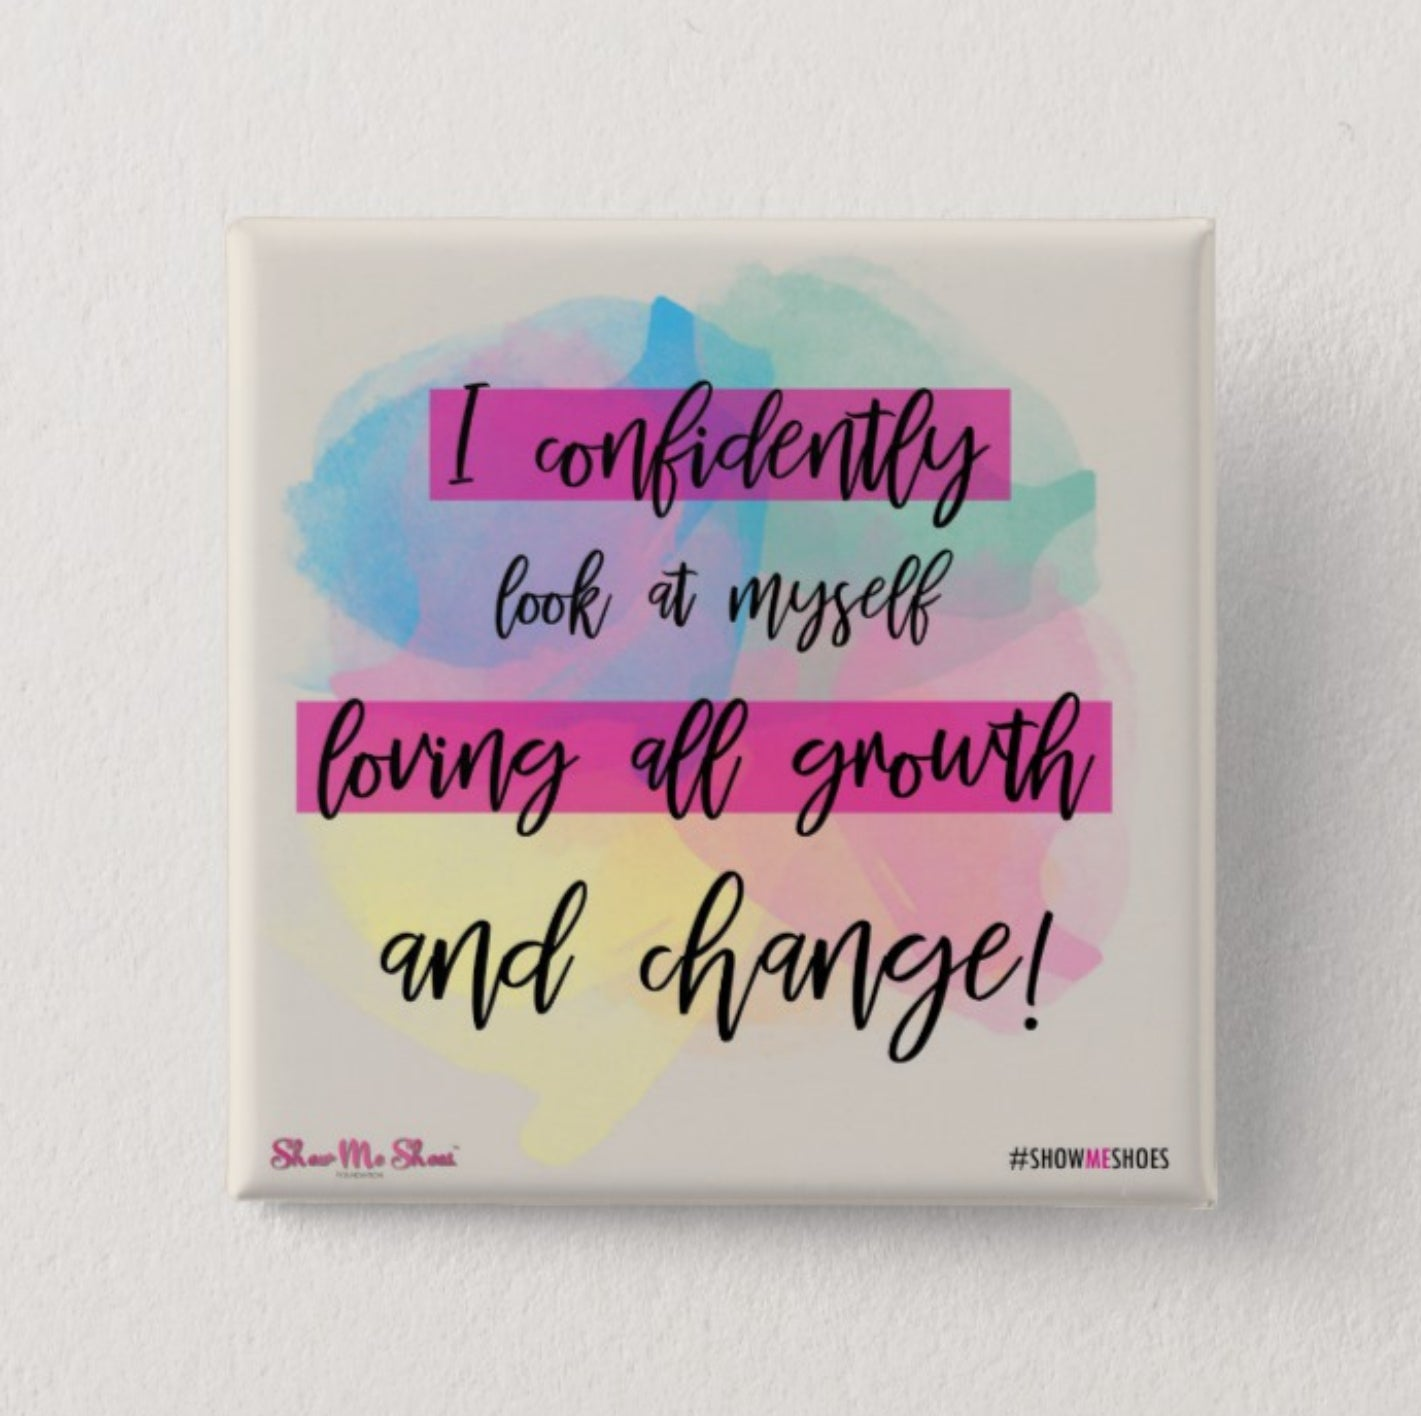 Affirmations from the Sole - I confidently look at myself!